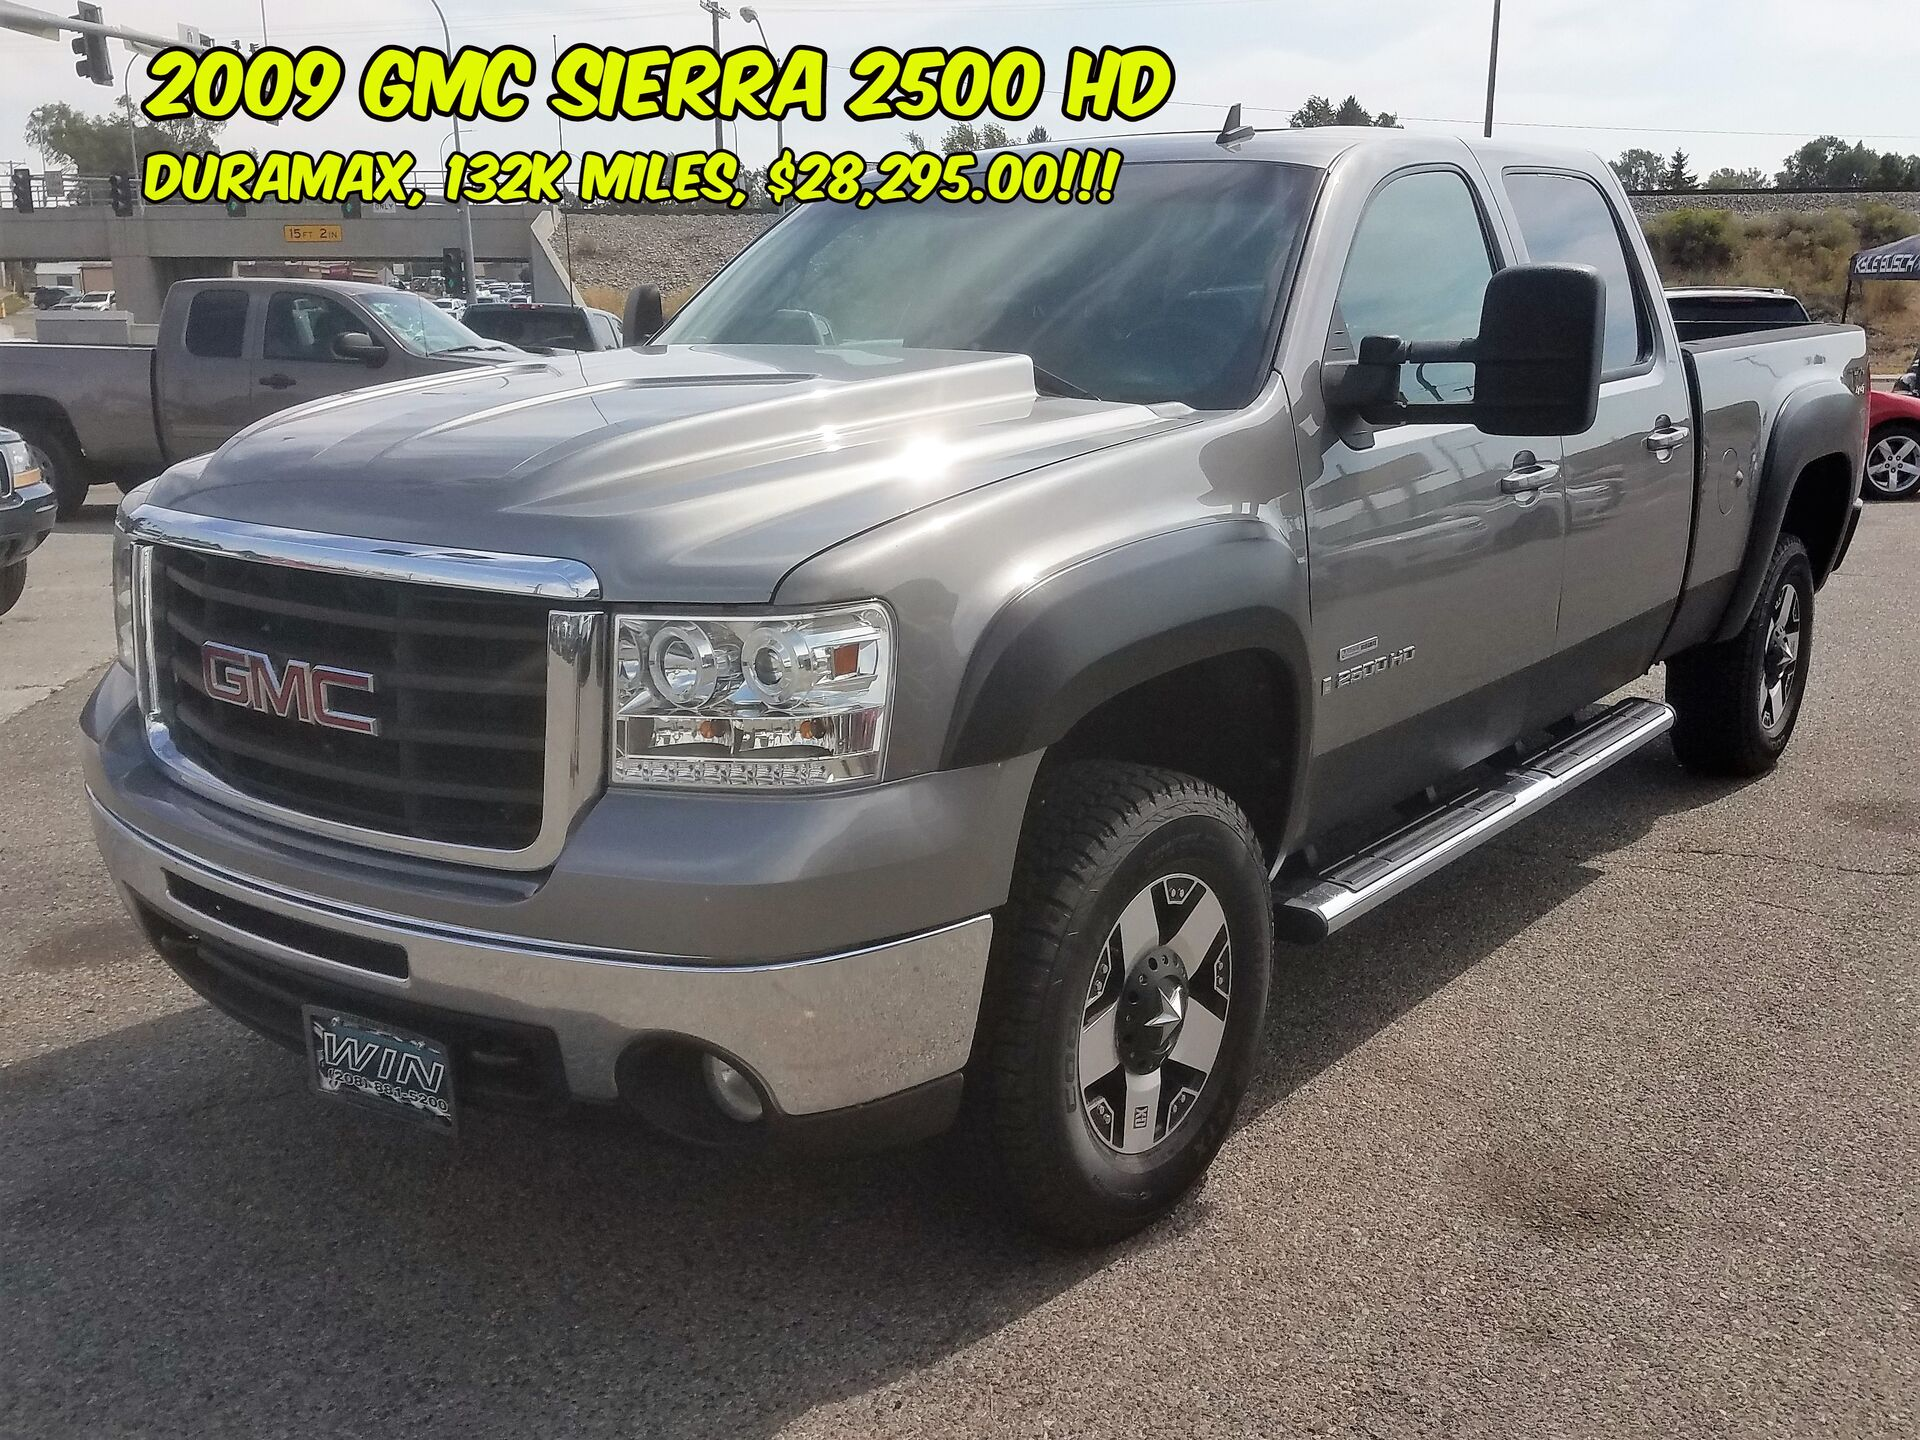 2009 GMC Sierra 2500 HD